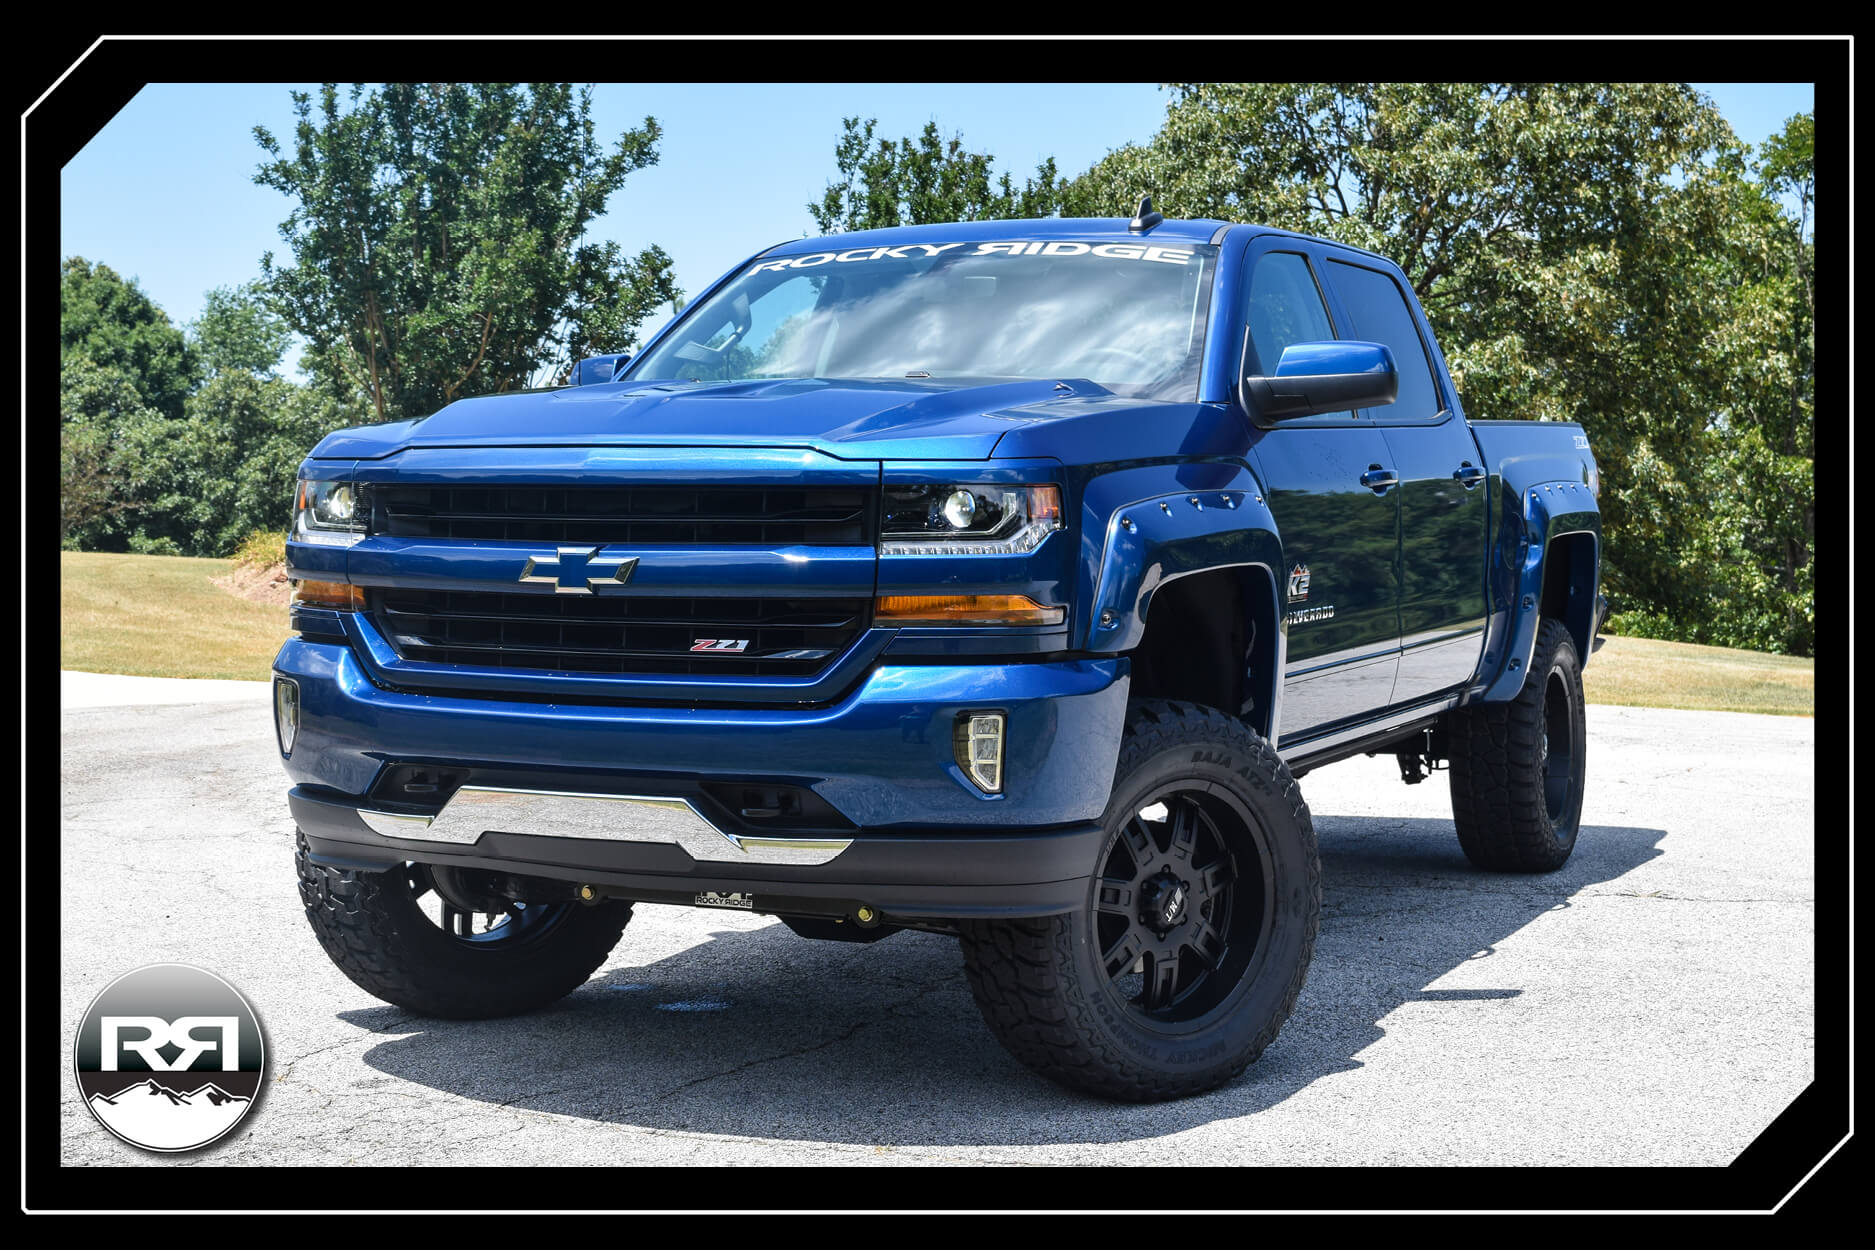 Chevy K2 Edition